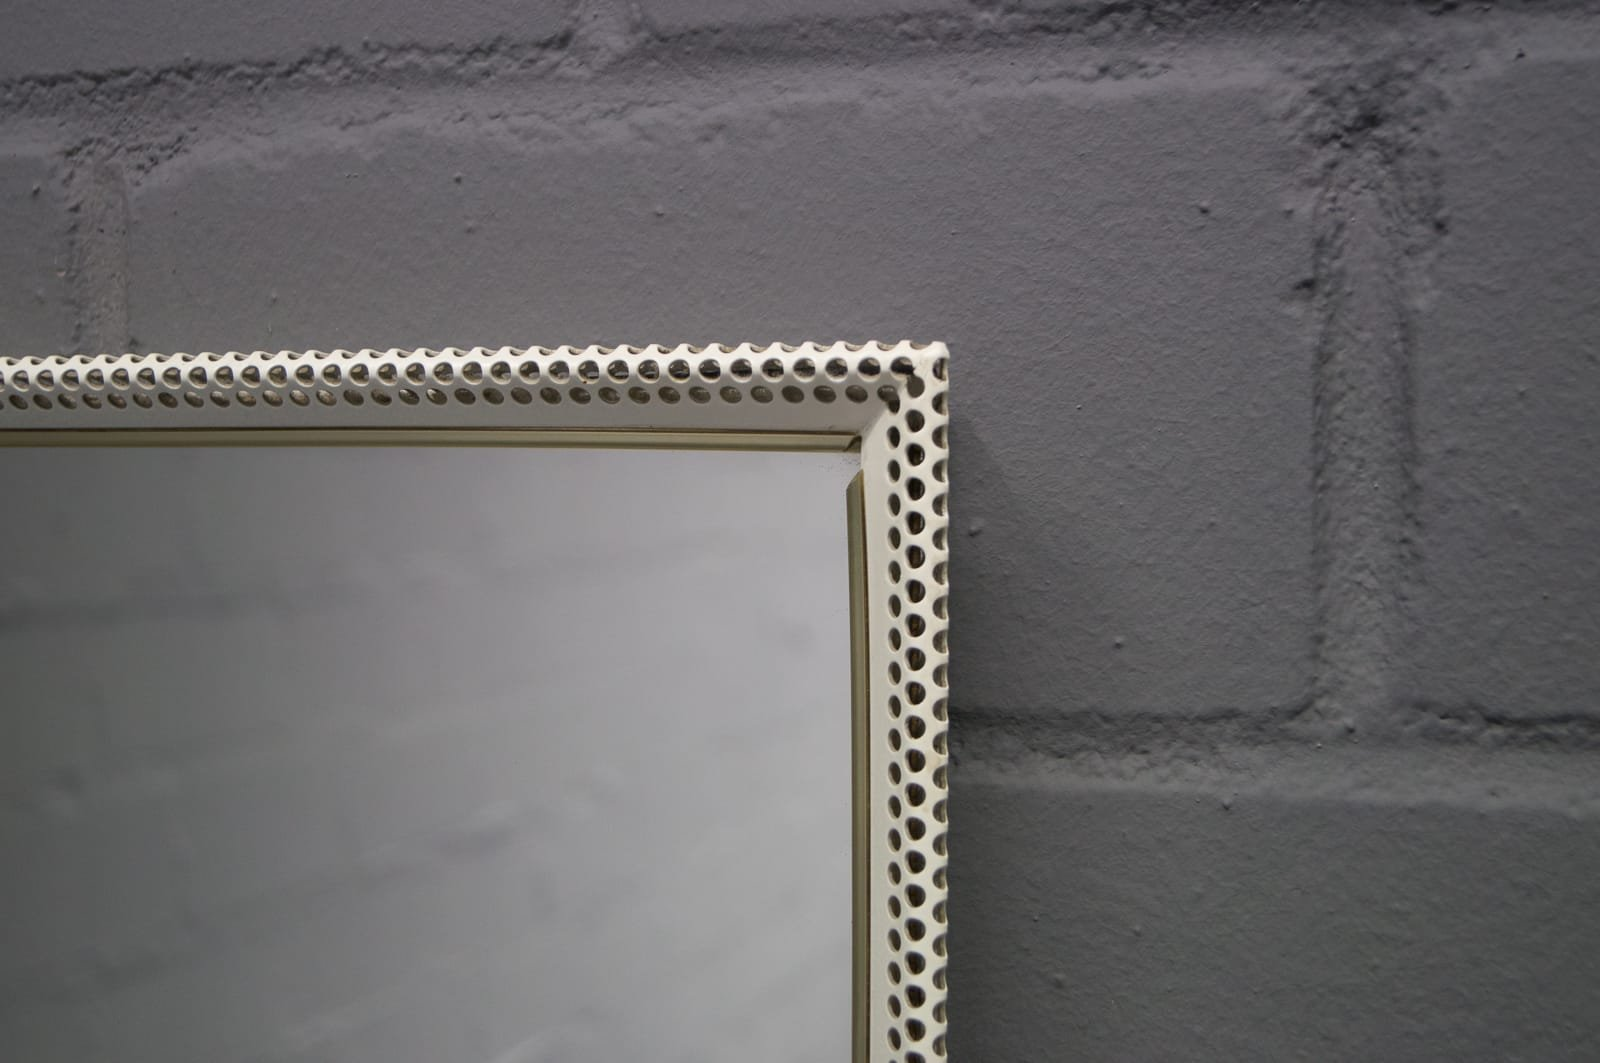 Large Rectangular Wall Mirror large rectangular wall mirror in painted perforated metal from